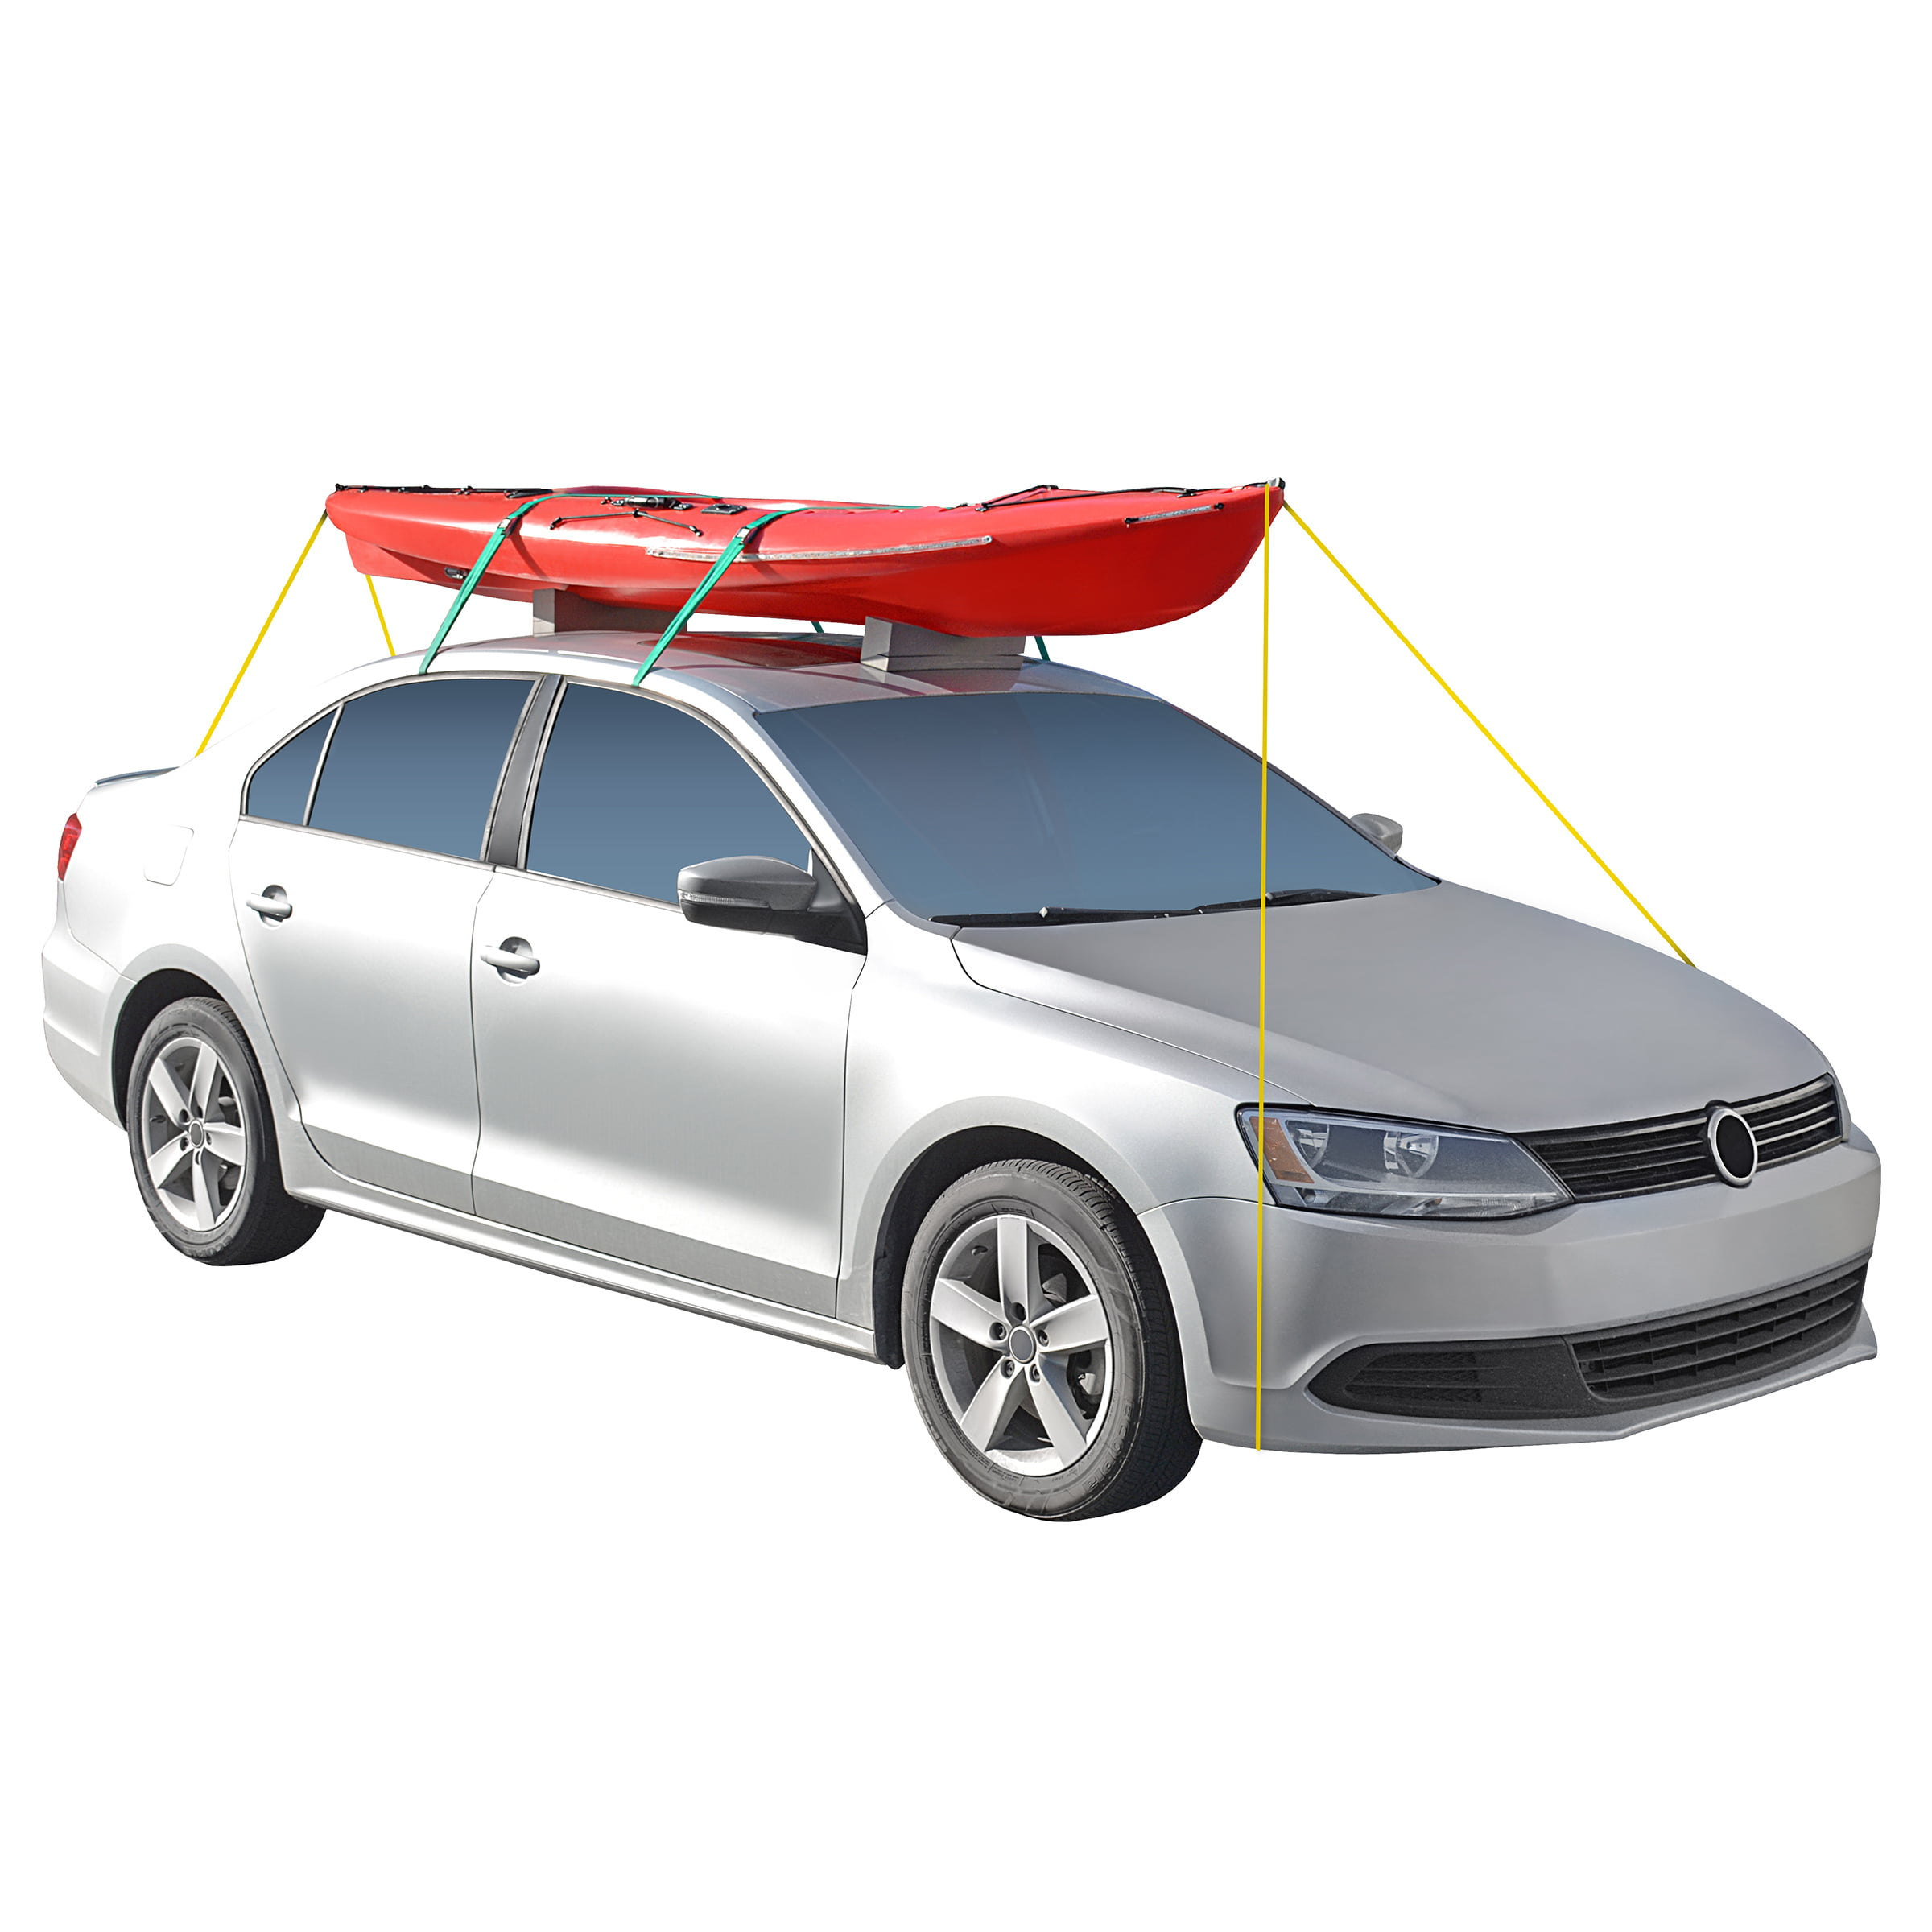 Propel Paddle Gear Universal Kayak Car Top Carrier Kit by Shoreline Marine